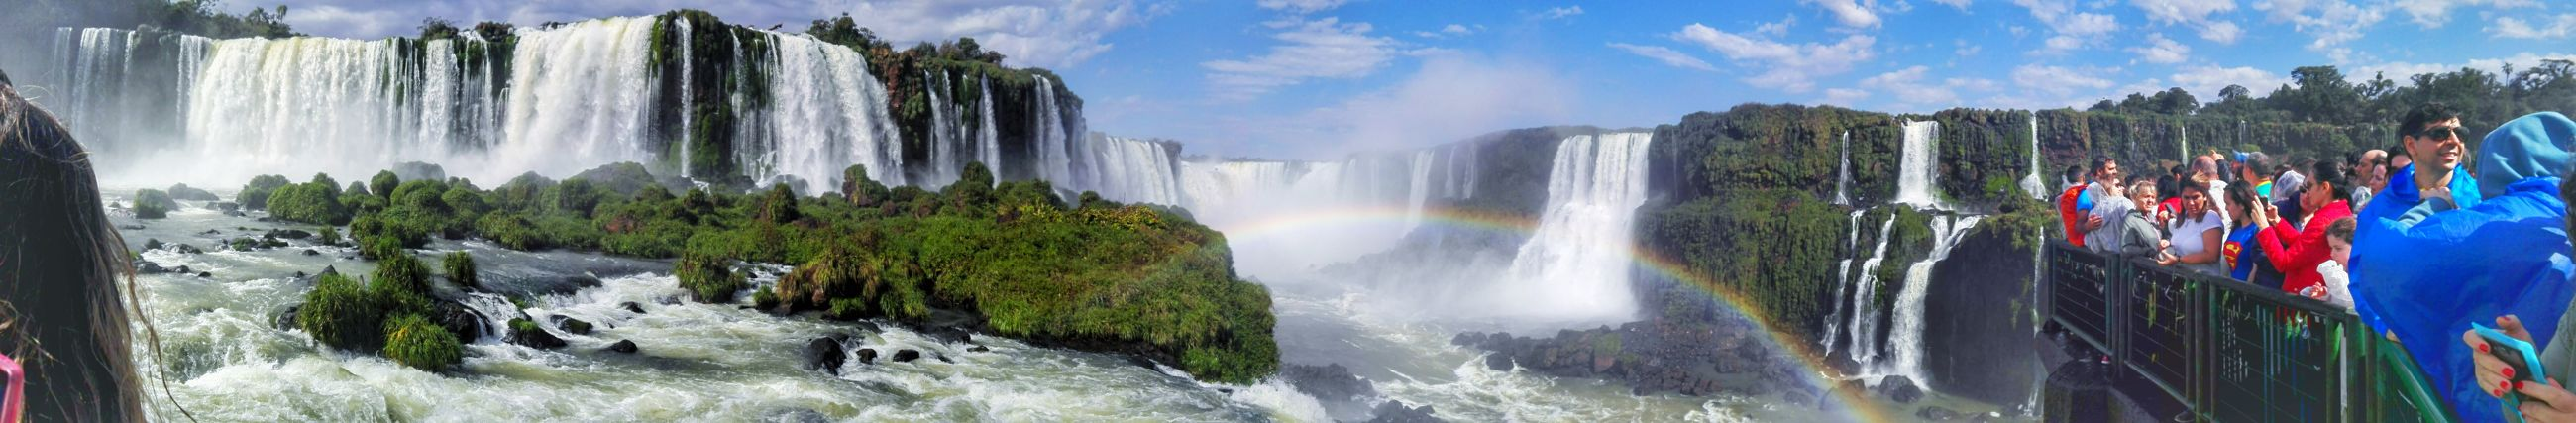 Travel Destinations Nature Panoramic Travel Brasil ♥ Iguazu 🌈🔆